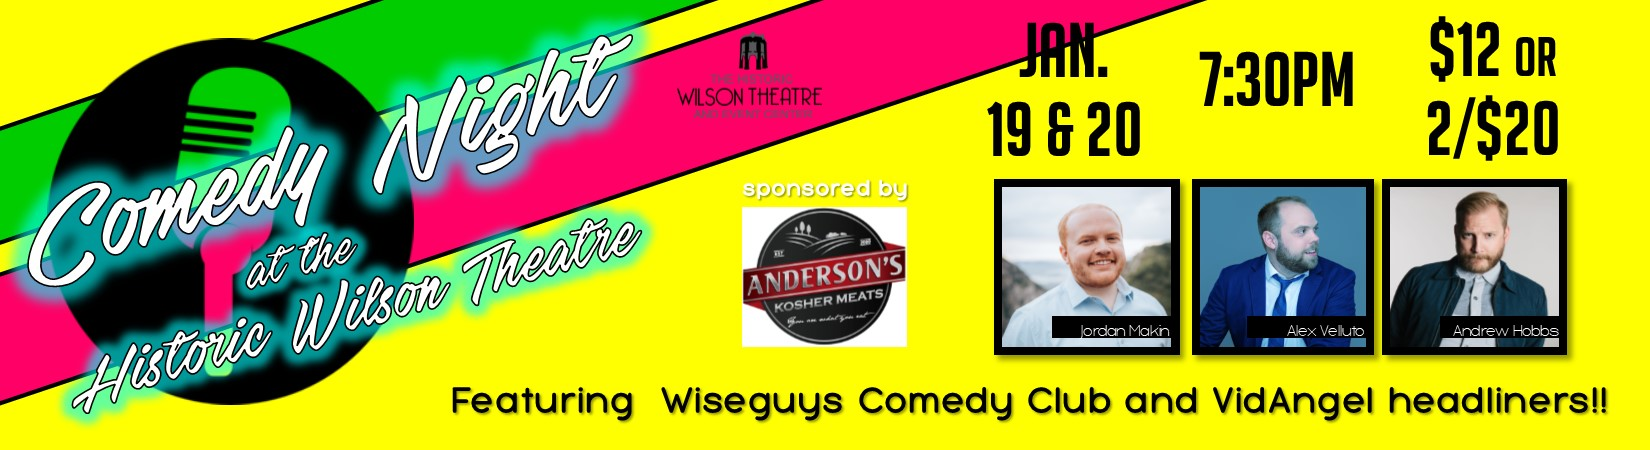 Comedy Night at the Historic Wilson Theatre!